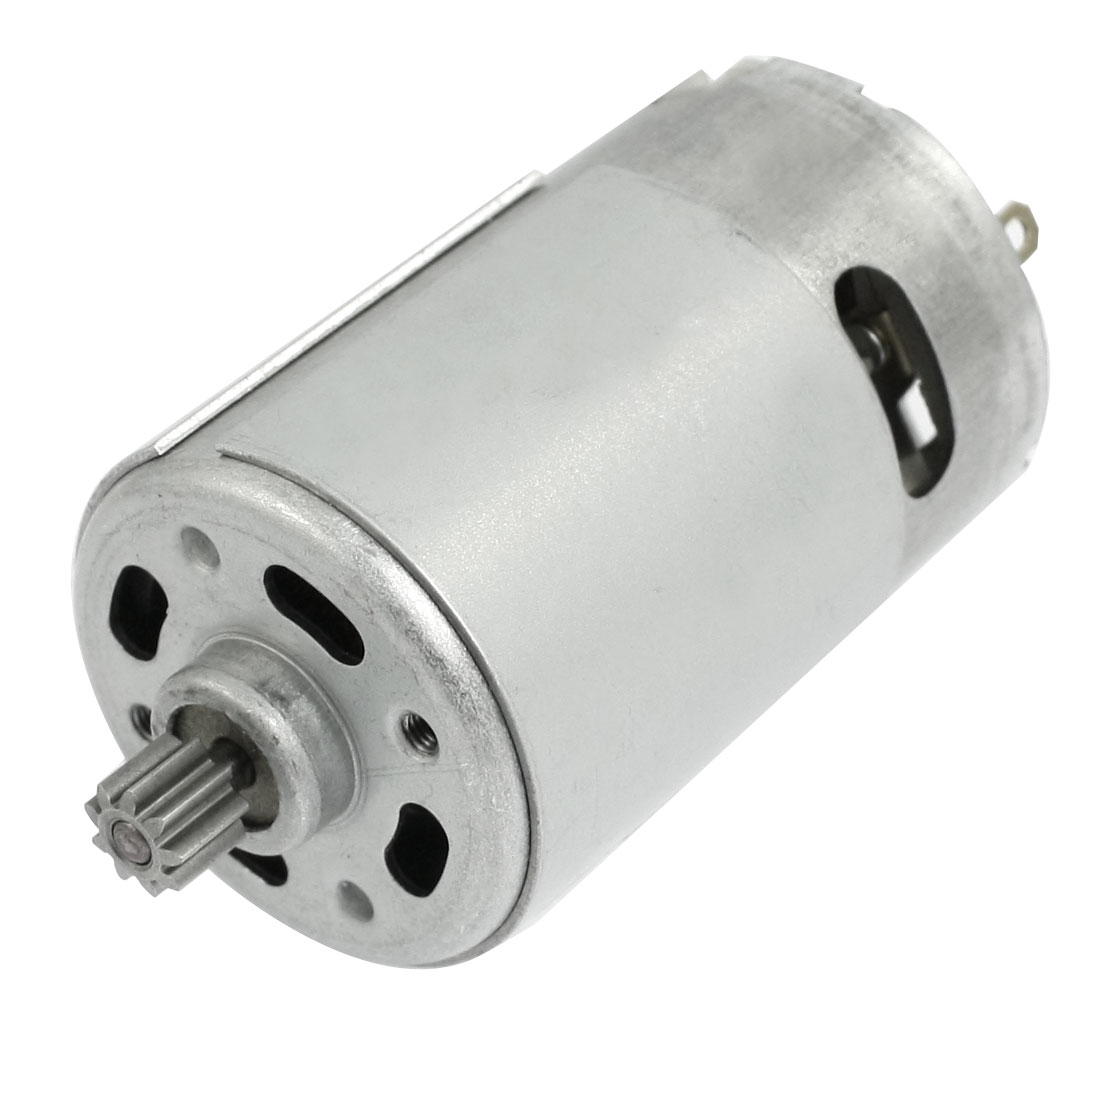 DC 14.4V 9 Teeth Shank Gear Motor Replacement for Rechargeable Electric Drill